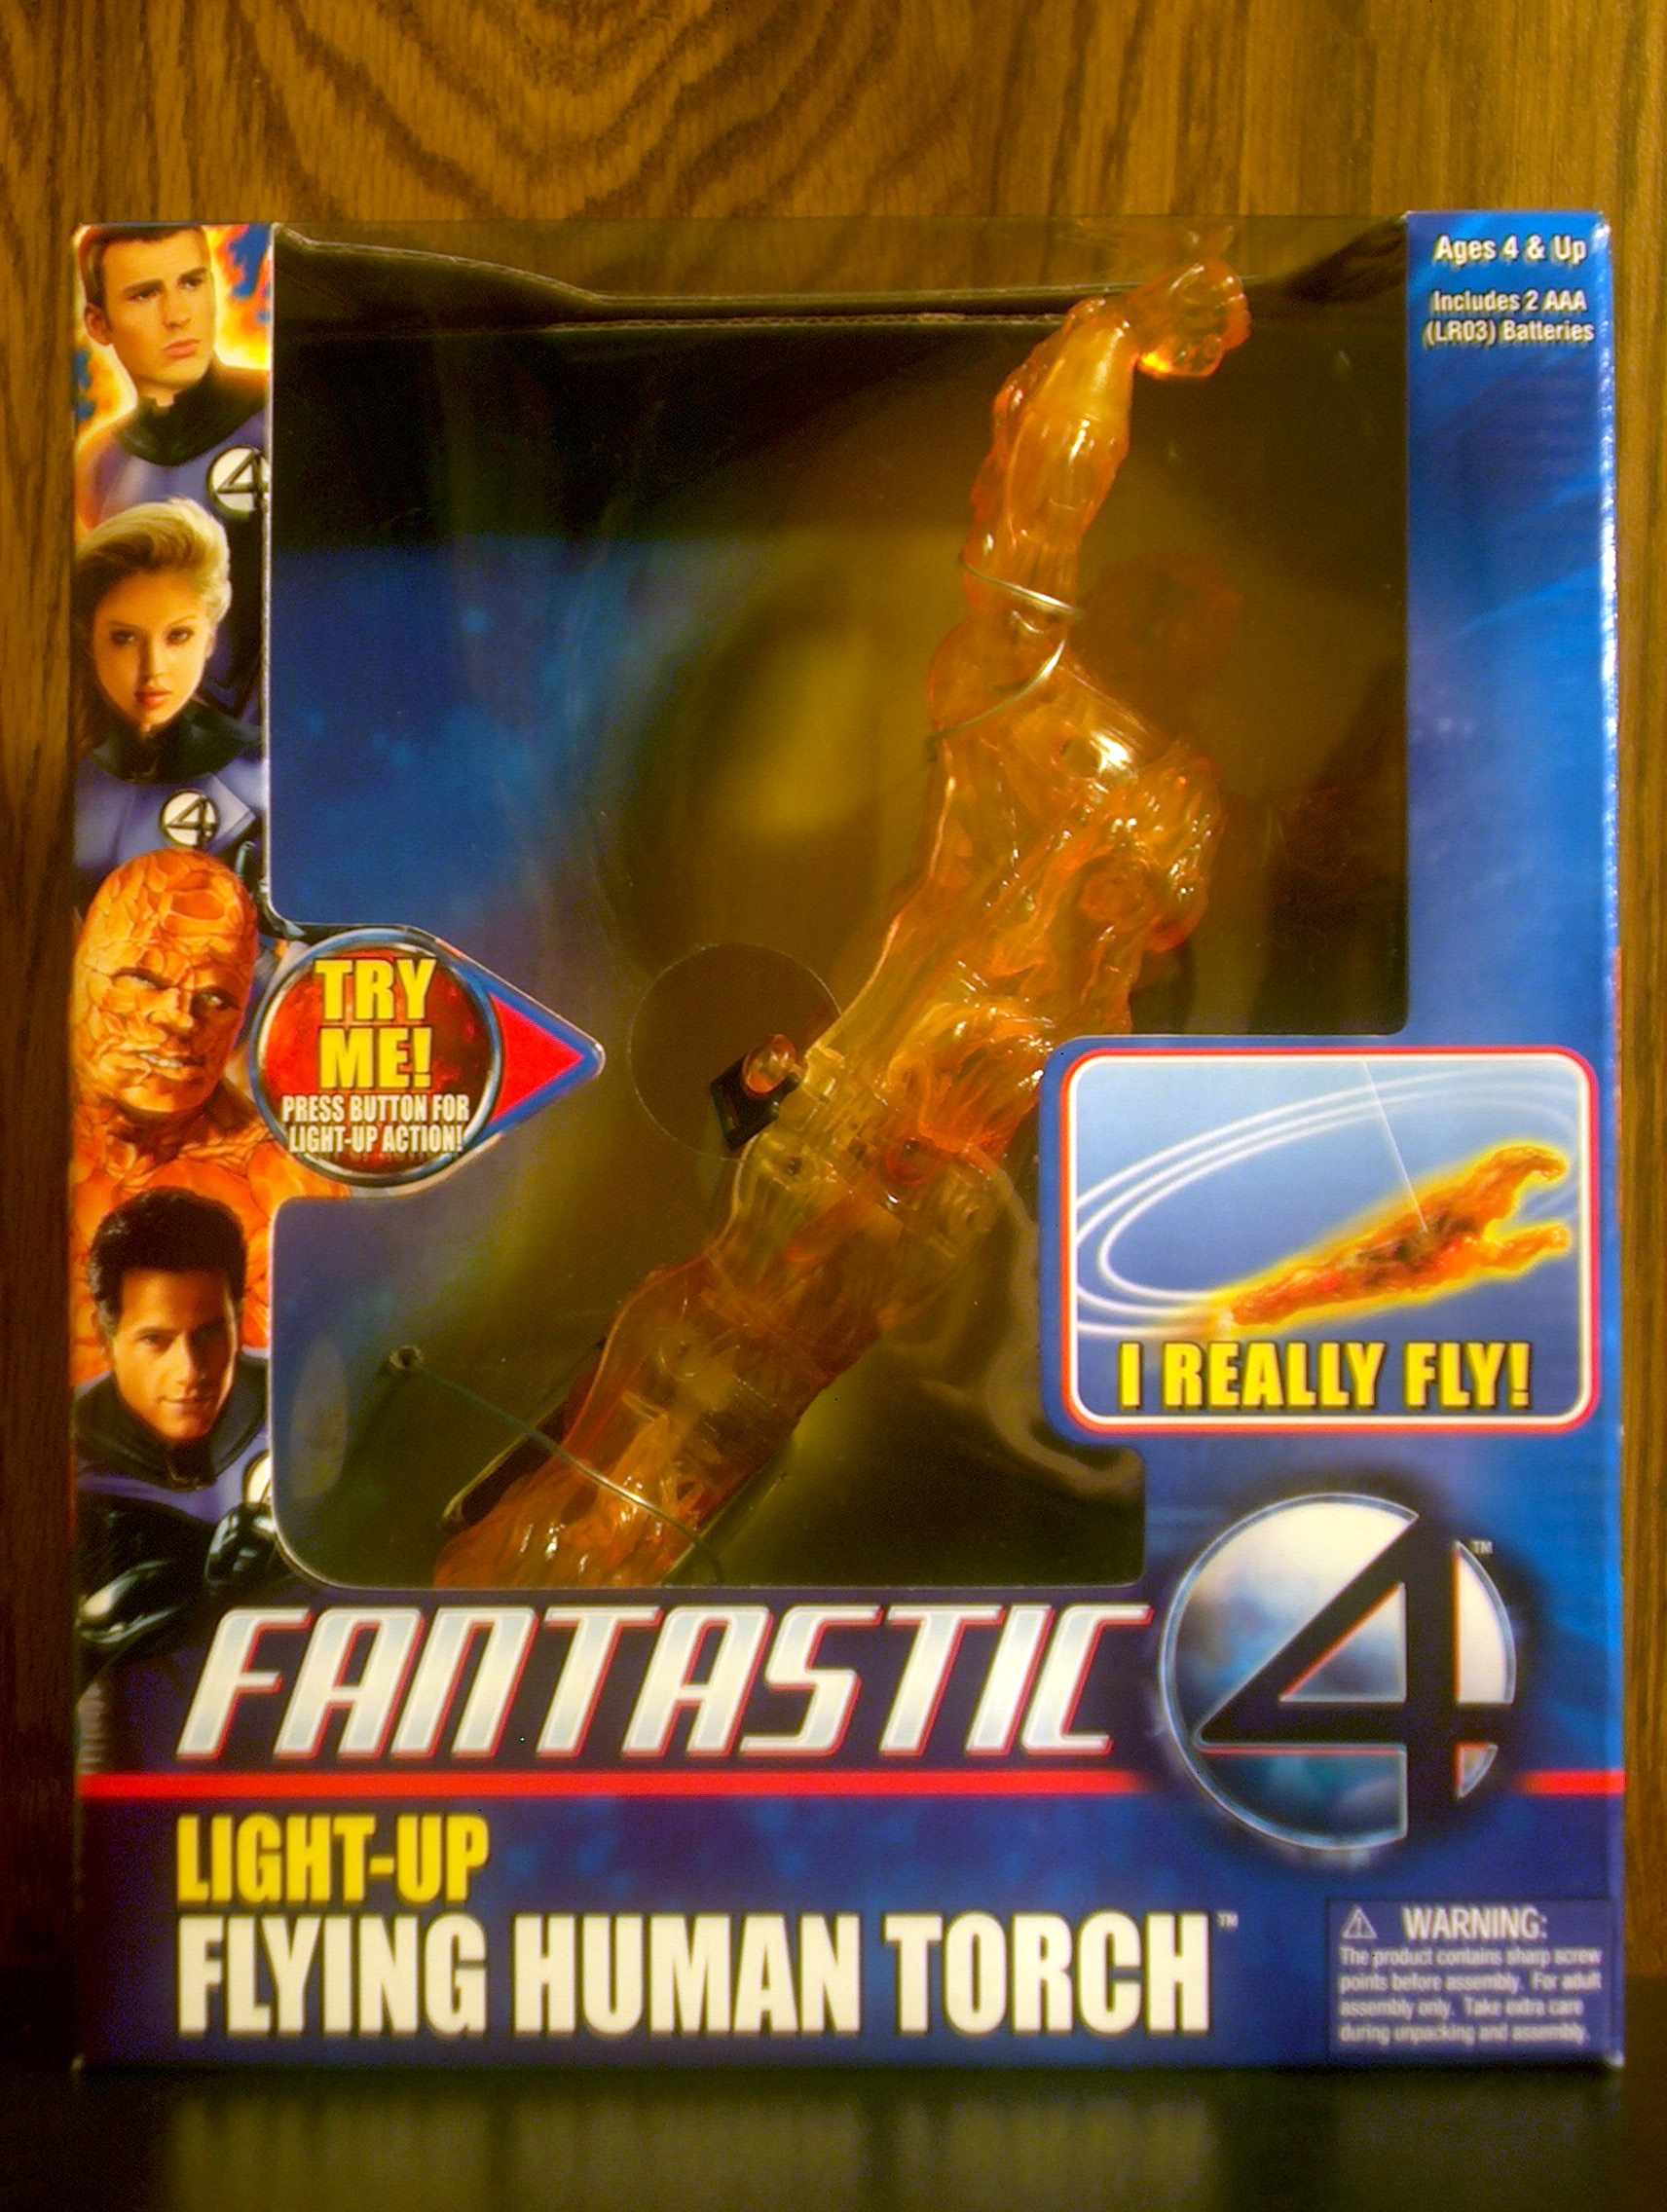 Light-Up Flying Human Torch